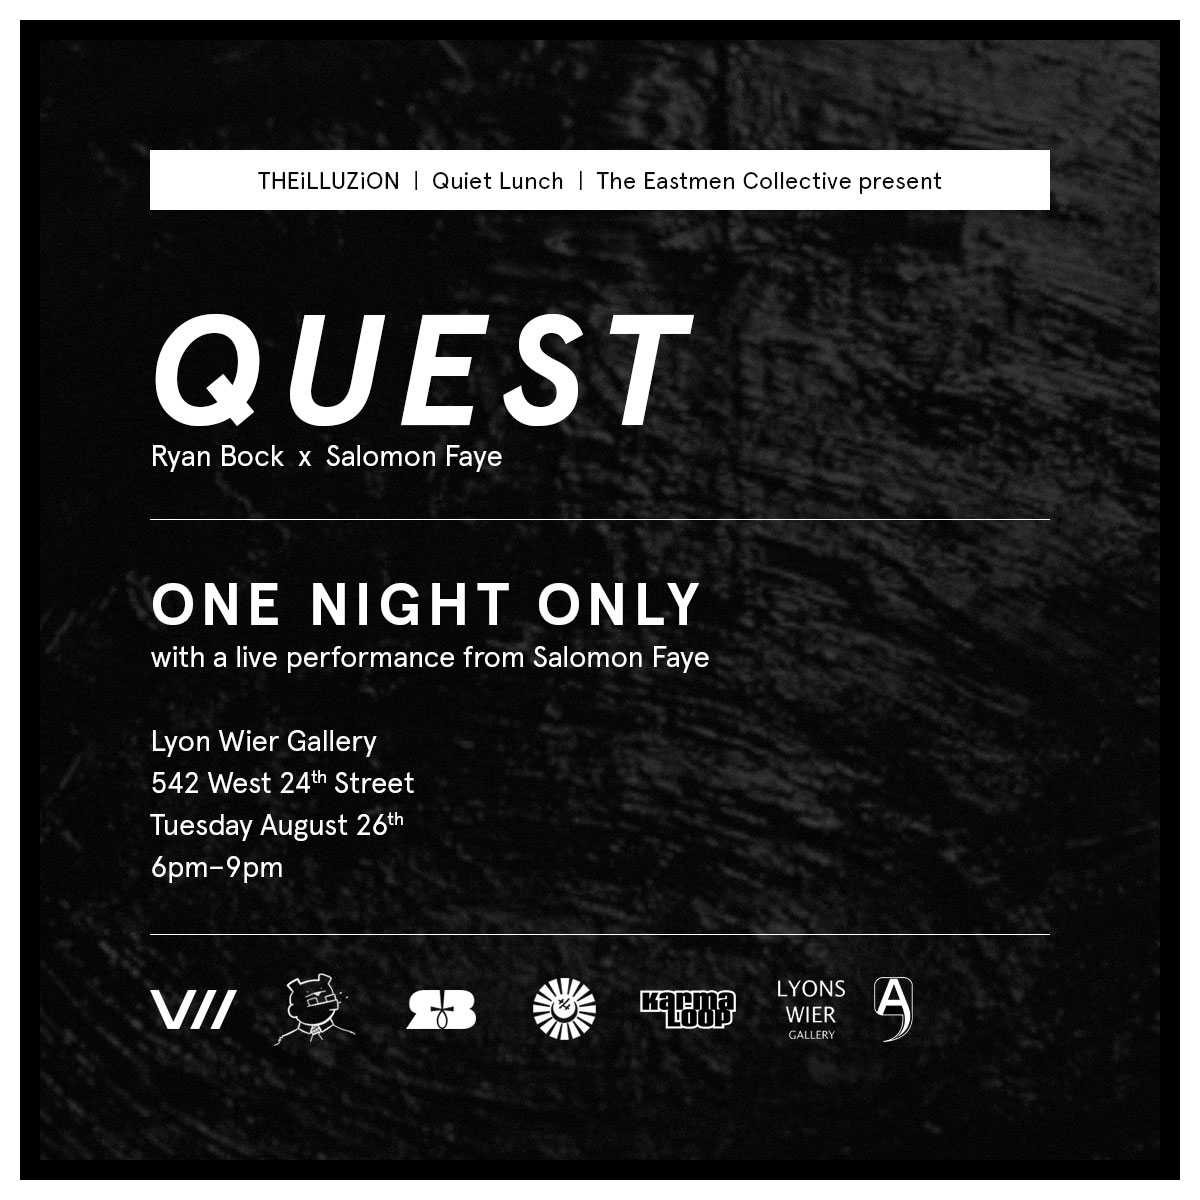 Quest-OneNightOnly